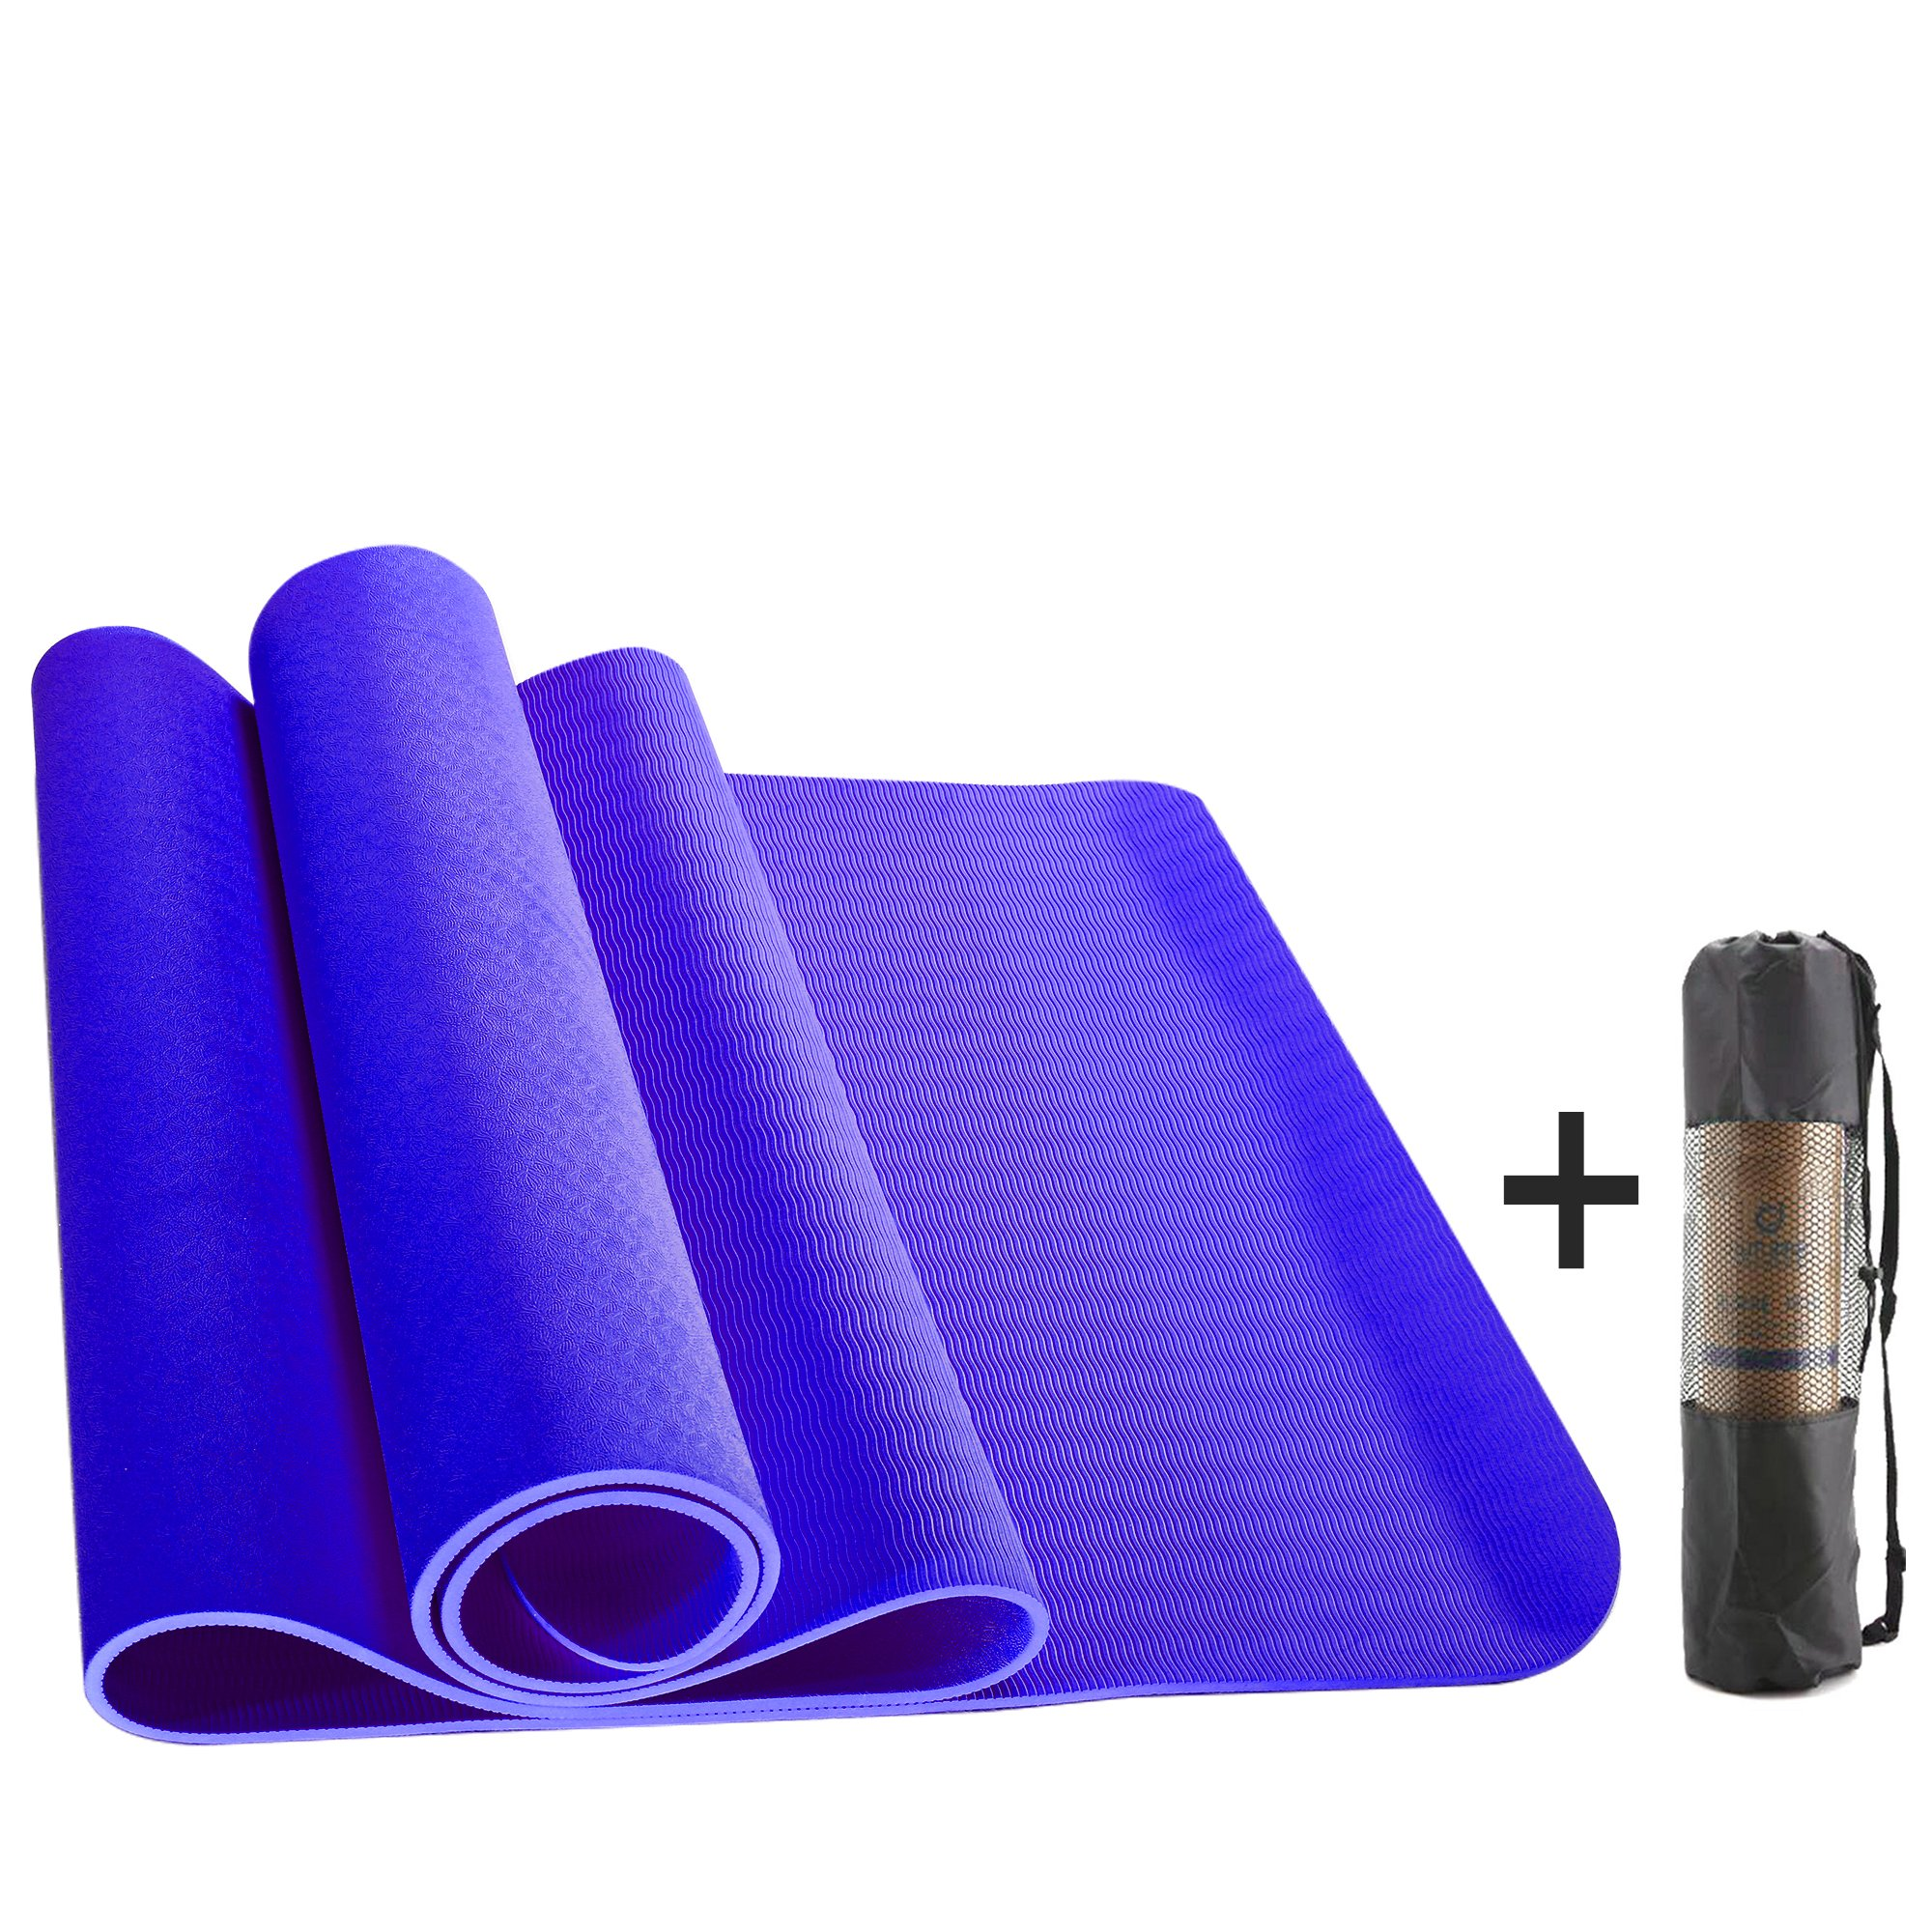 Yoga Mat - New Eco Friendly Non Slip TPE Yoga Mat For Men / Women Outdoor and Indoor. 6mm Thick L72''X W24'' , Perfect for Yoga, Pilates, Exercise & Workouts,Practice Dance,Free Yoga Bag(Purple)